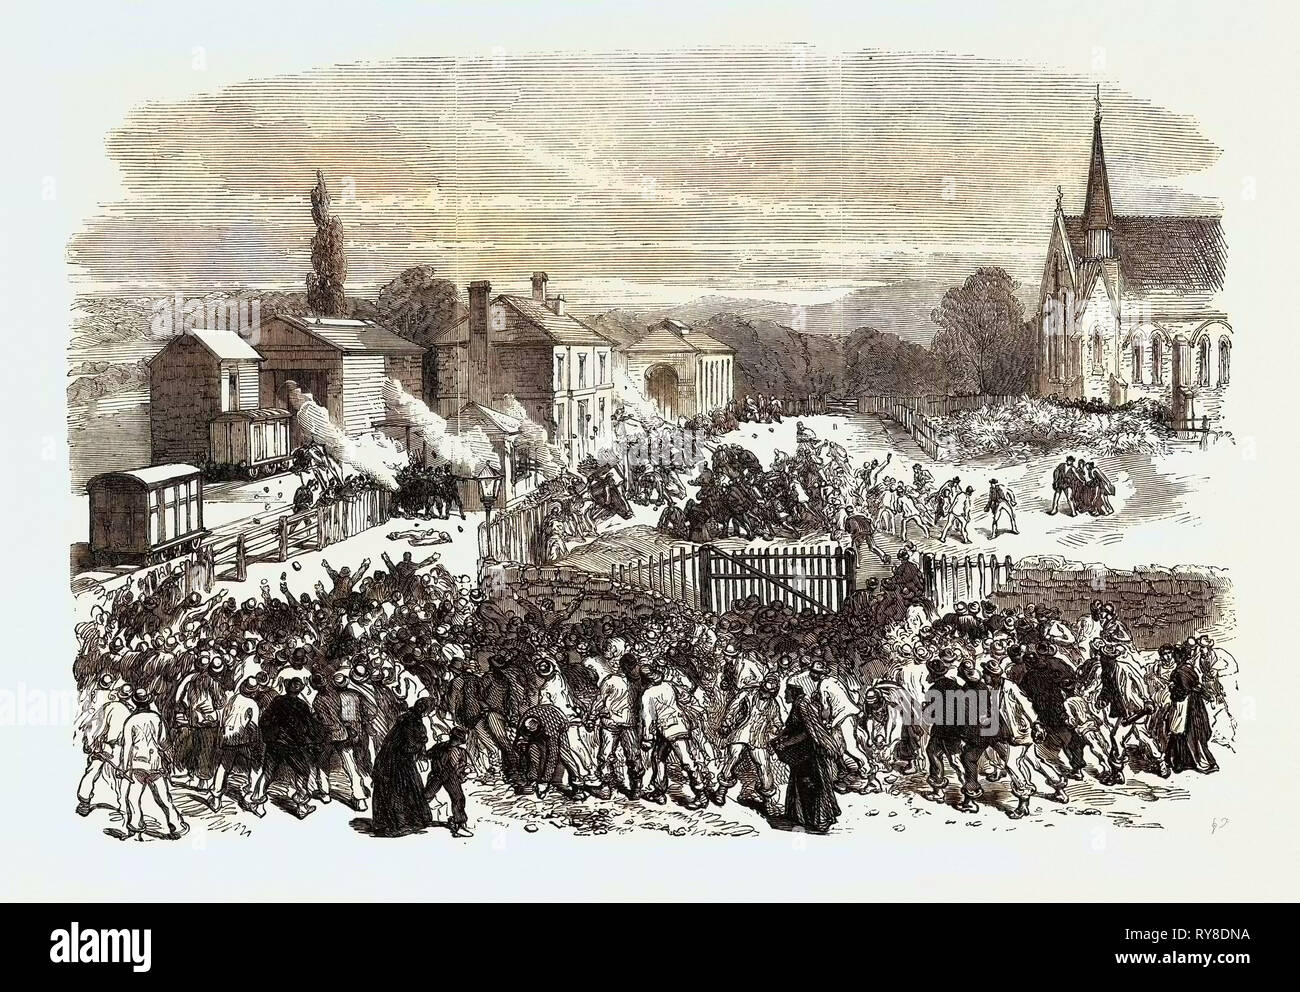 The Riot at Mold Flintshire: Attack on the Soldiers at the Railway Station 1869 - Stock Image